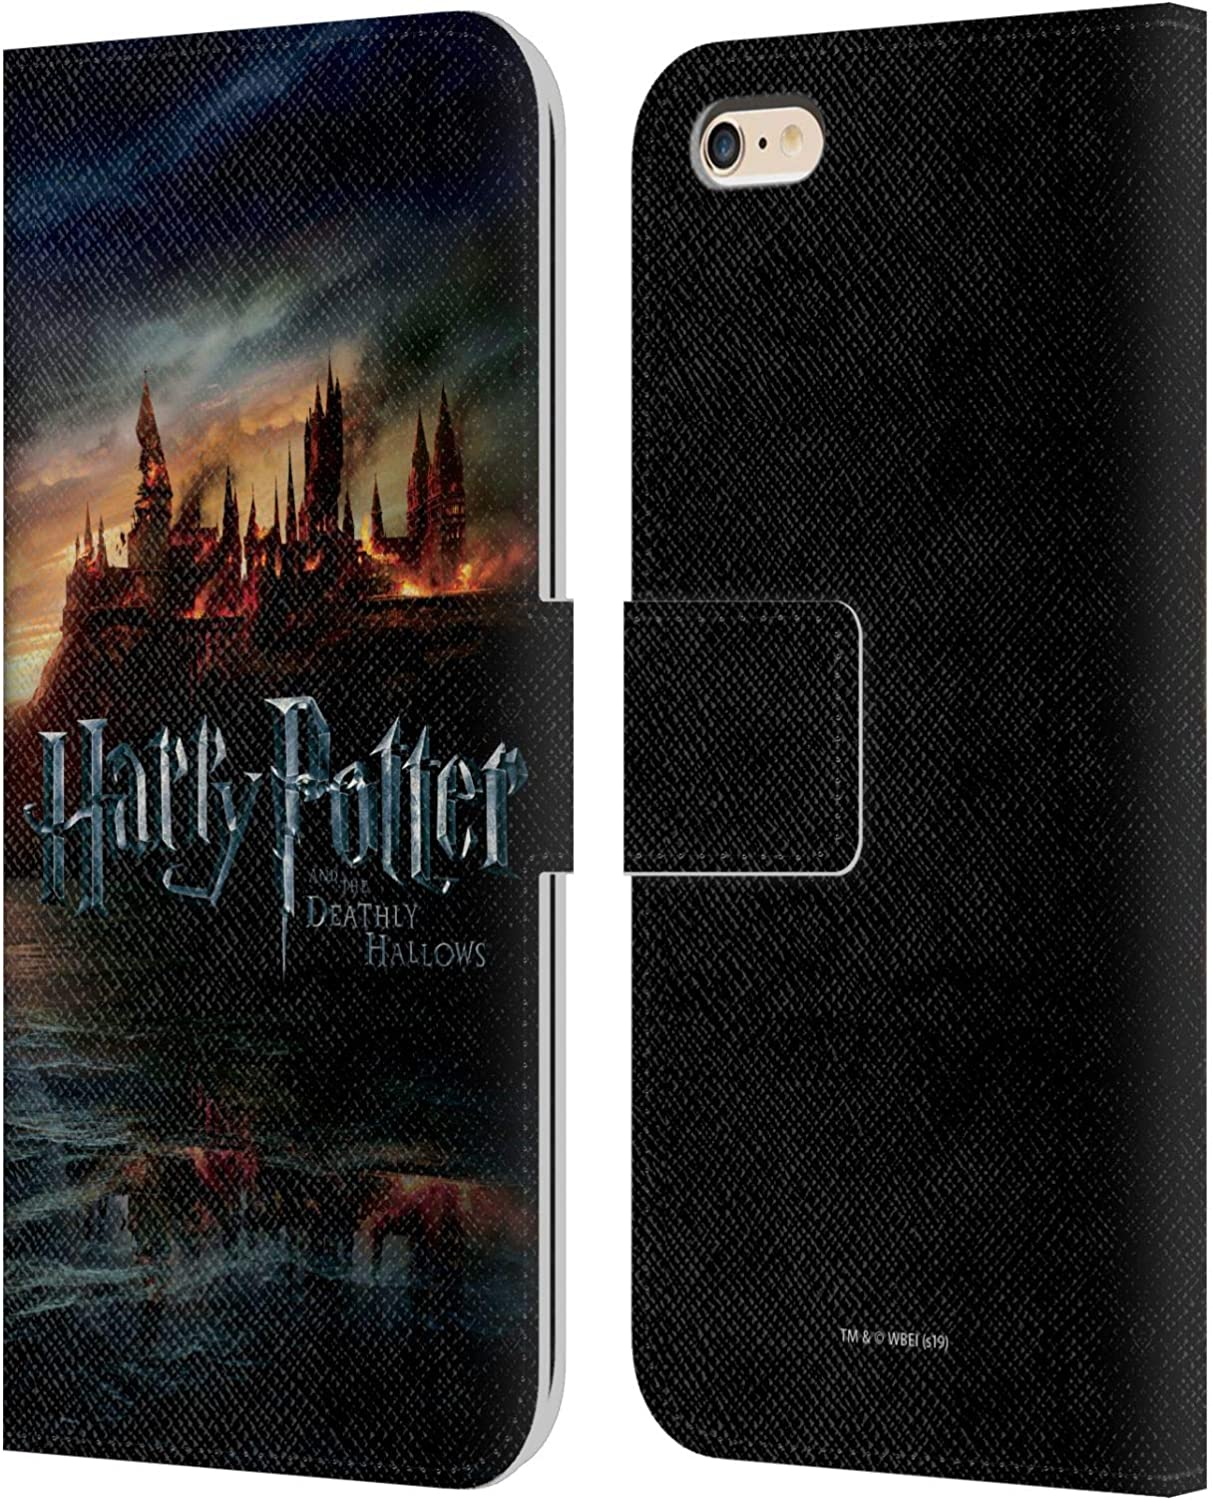 Head Case Designs Officially Licensed Harry Potter Castle Deathly Hallows VIII Leather Book Wallet Case Cover Compatible with Apple iPhone 6 Plus/iPhone 6s Plus